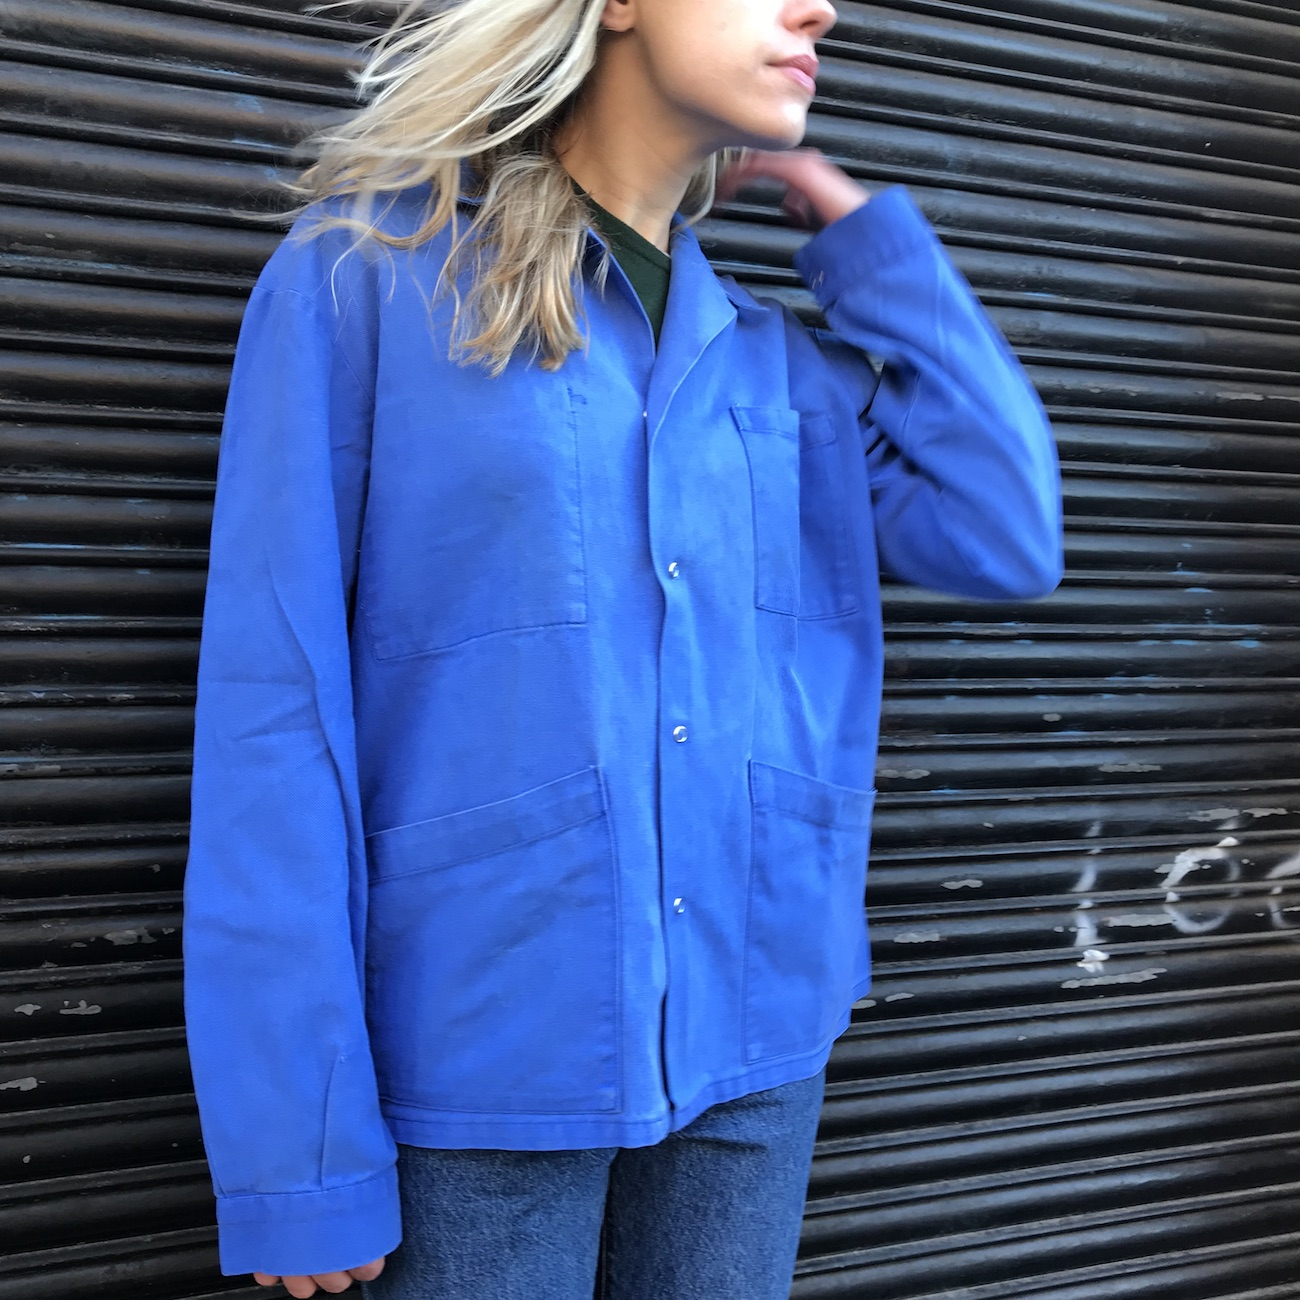 French Workwear Pop Up at the Seveney